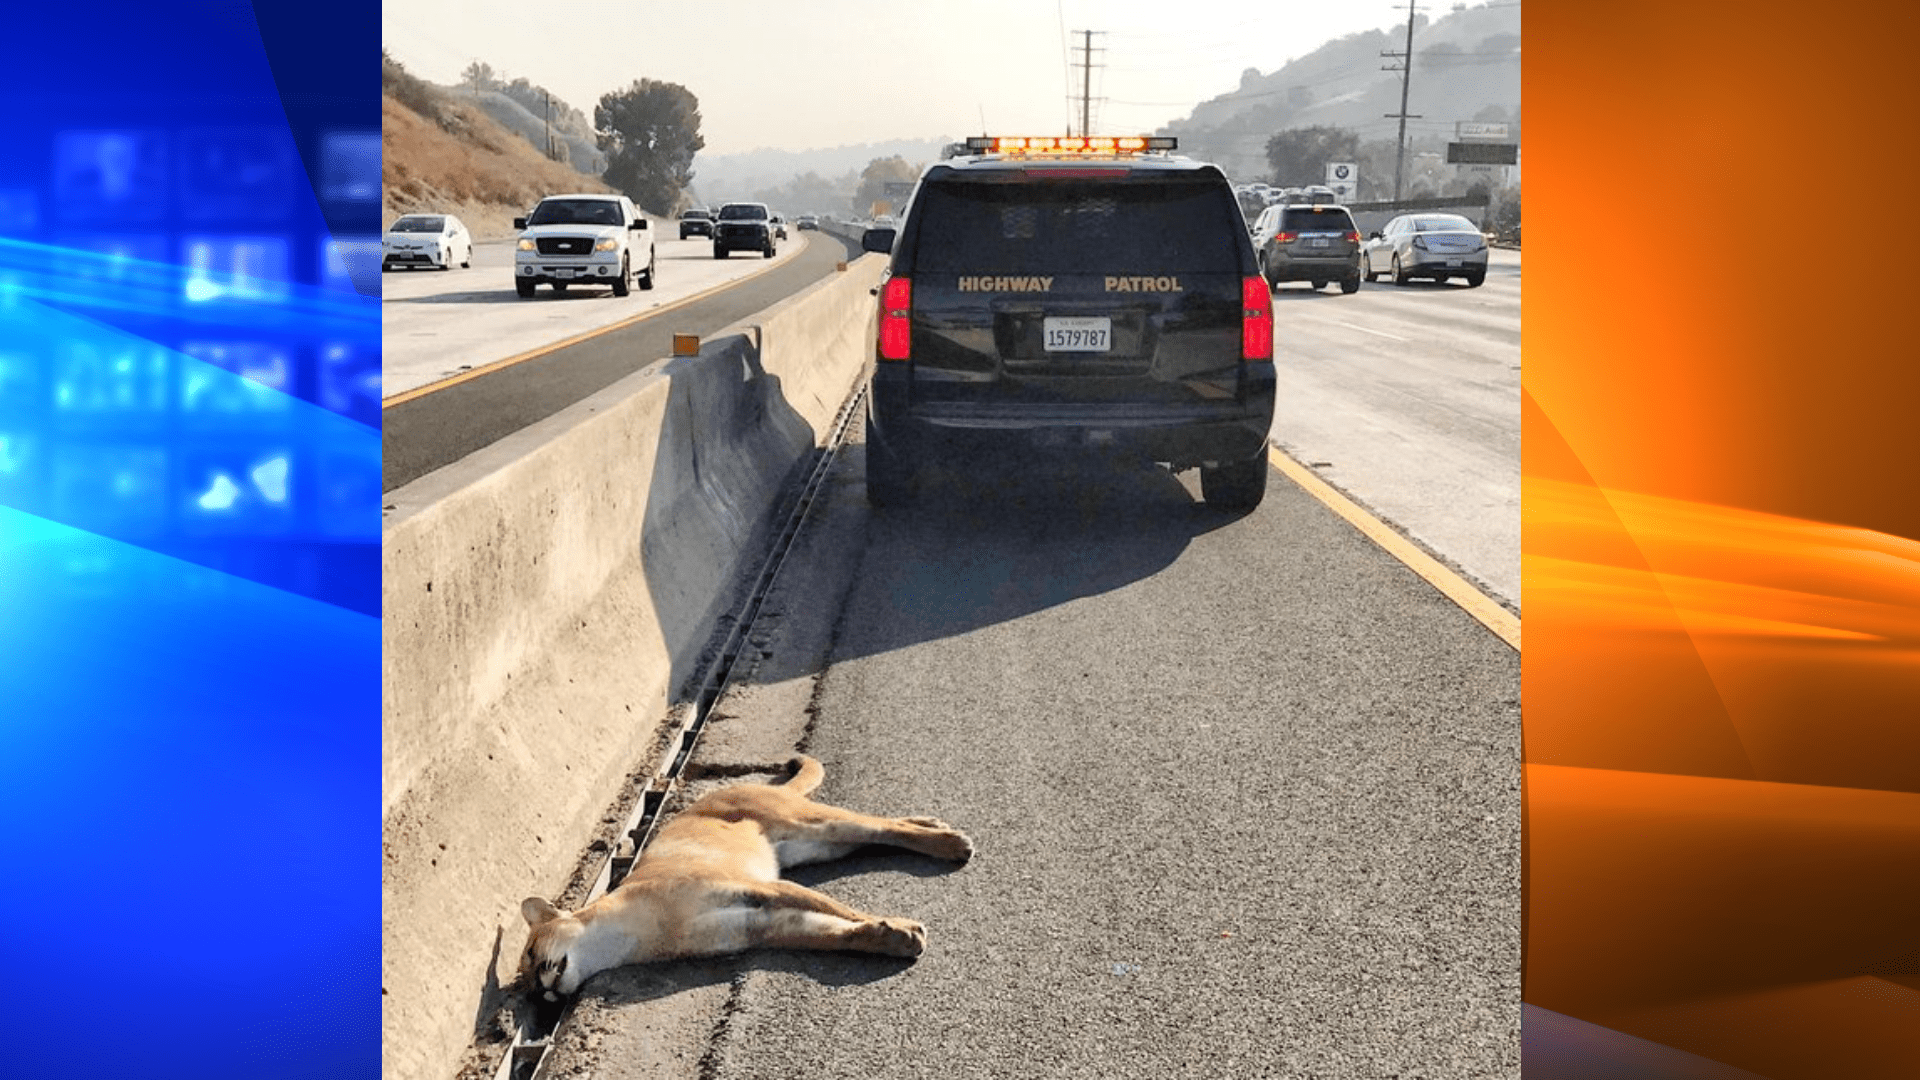 The California Highway Patrol's West Valley division tweeted this image of a mountain lion's body on the 101 Freeway in Calabasas on Sept. 23, 2020.